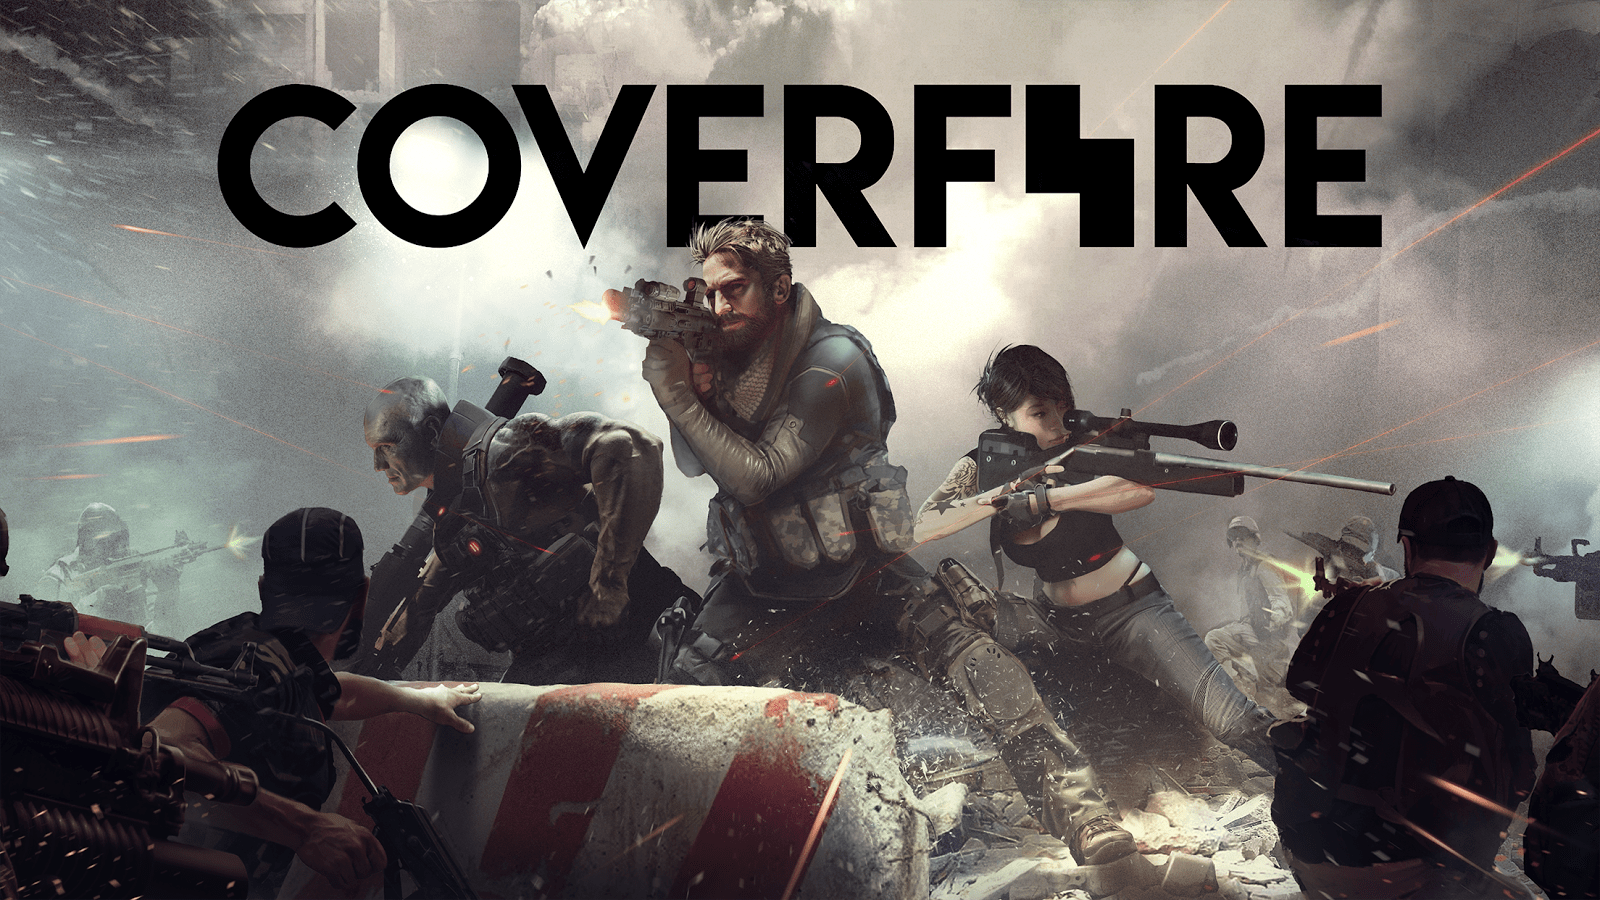 Cover Fire - Cover Fire Mod Apk V1.21.5 (Unlimited Money + VIP Unlocked)